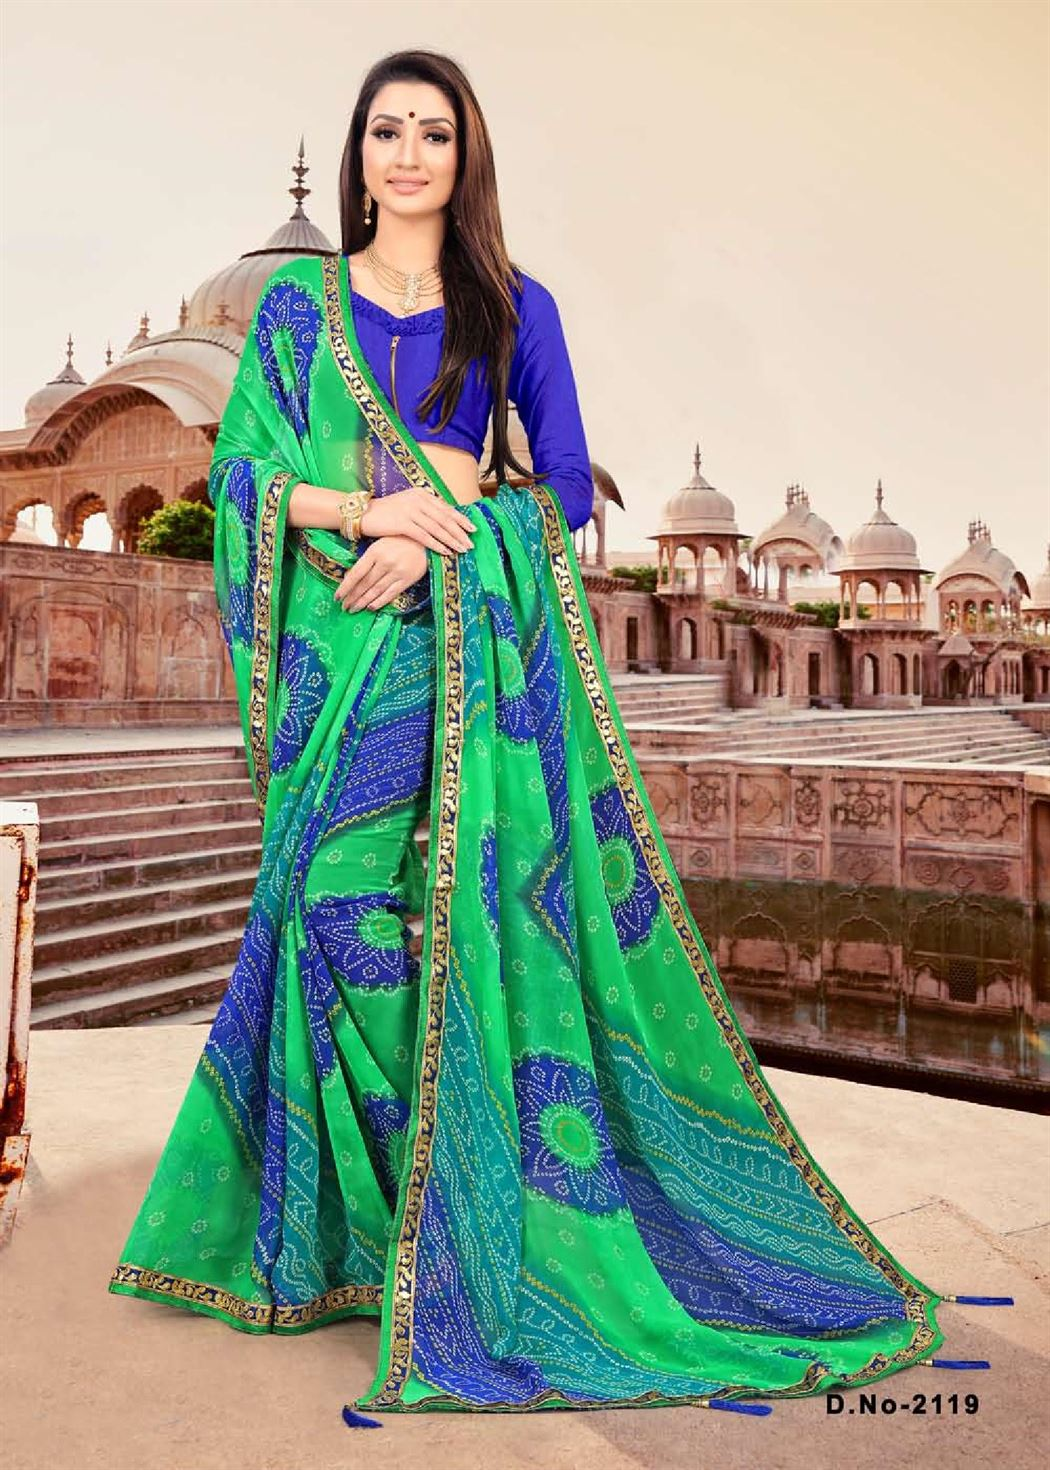 https://www.wholesaletextile.in/product-img/Vandini-Weight-less-casual-wear-sarees-catalogue-81575696709.jpg